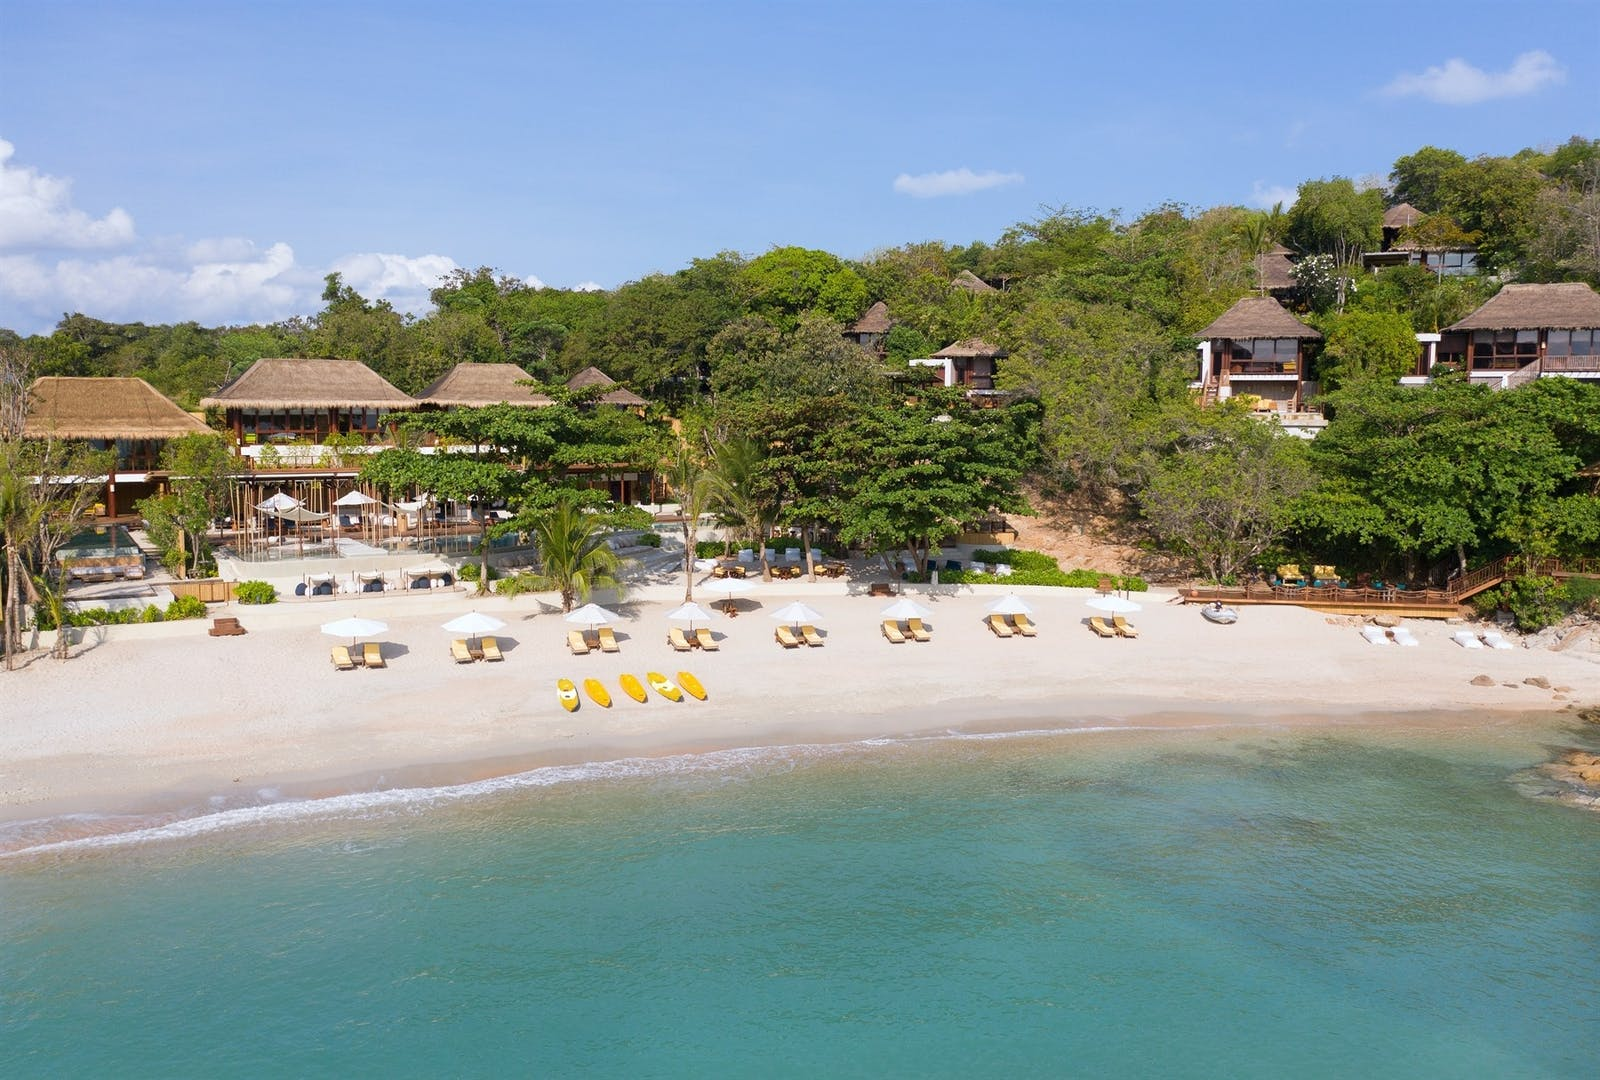 Drift at the Beach, Six Senses Samui, Koh Samui, Thailand